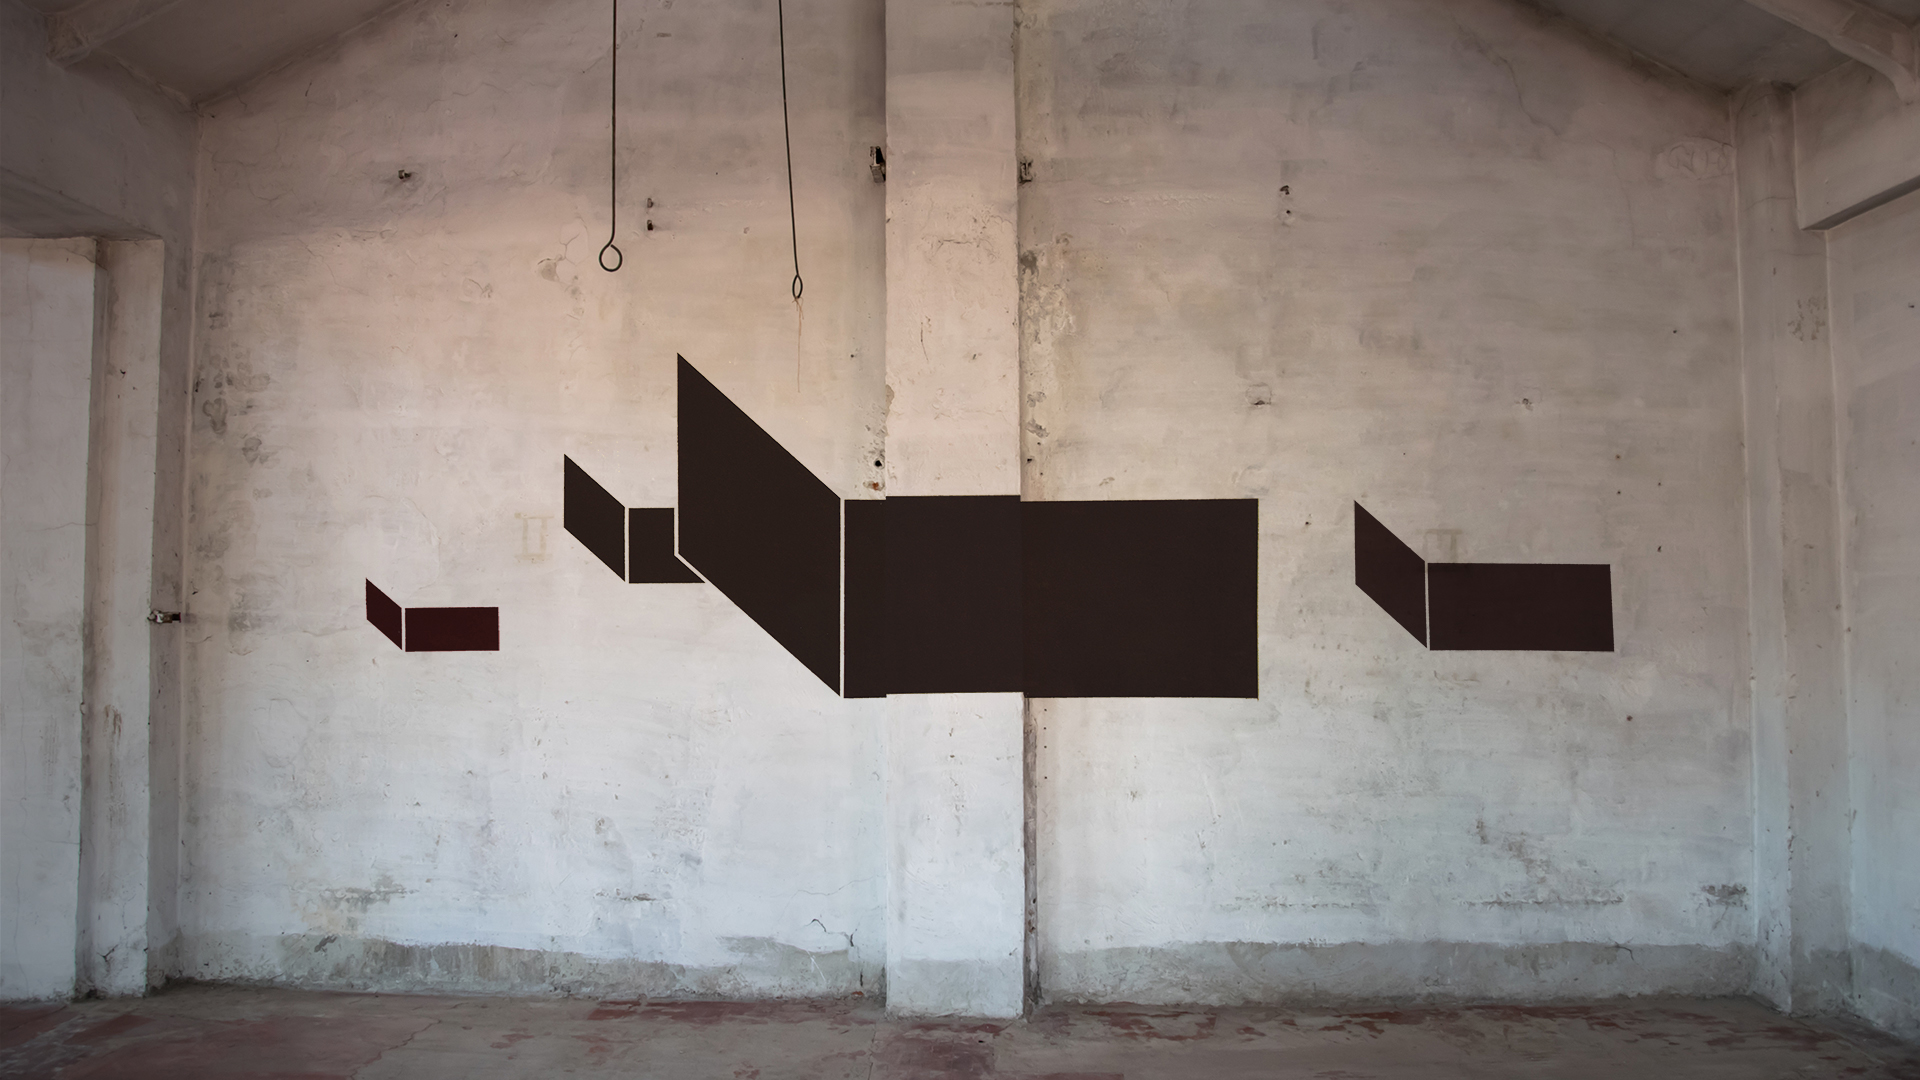 Geometric graffiti art